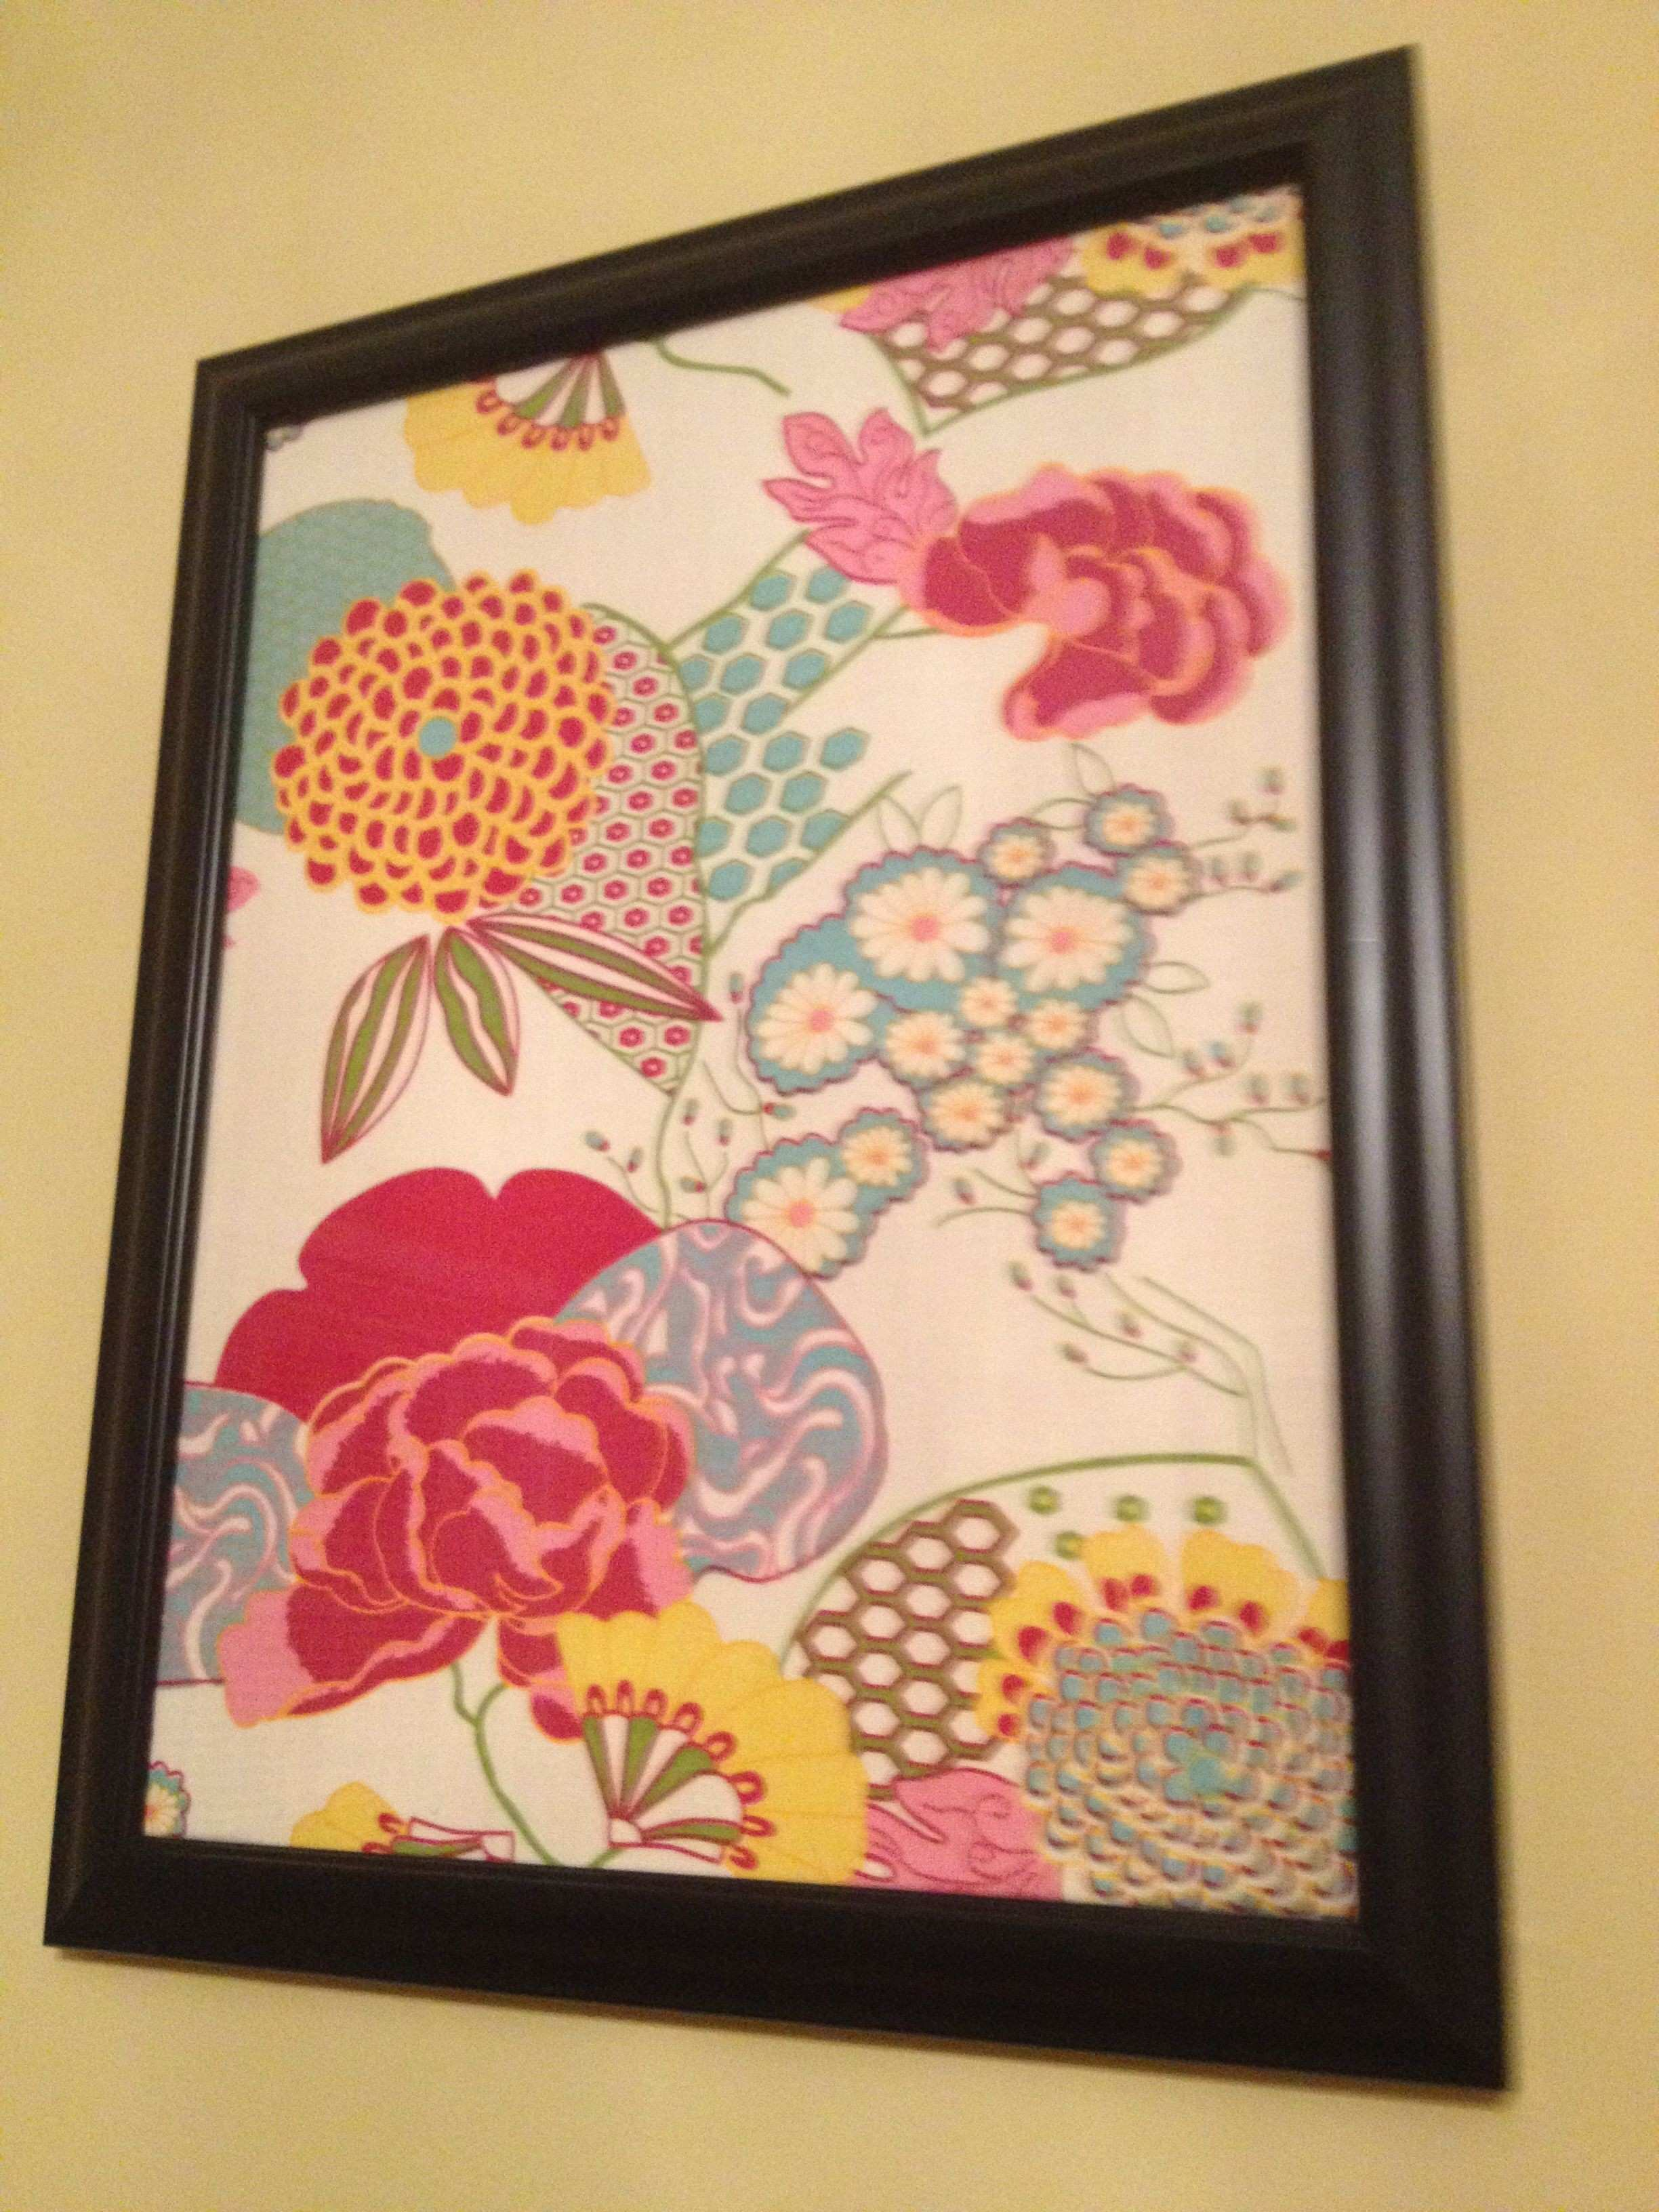 Framed placemats make for cheap wall art I got these placemats at